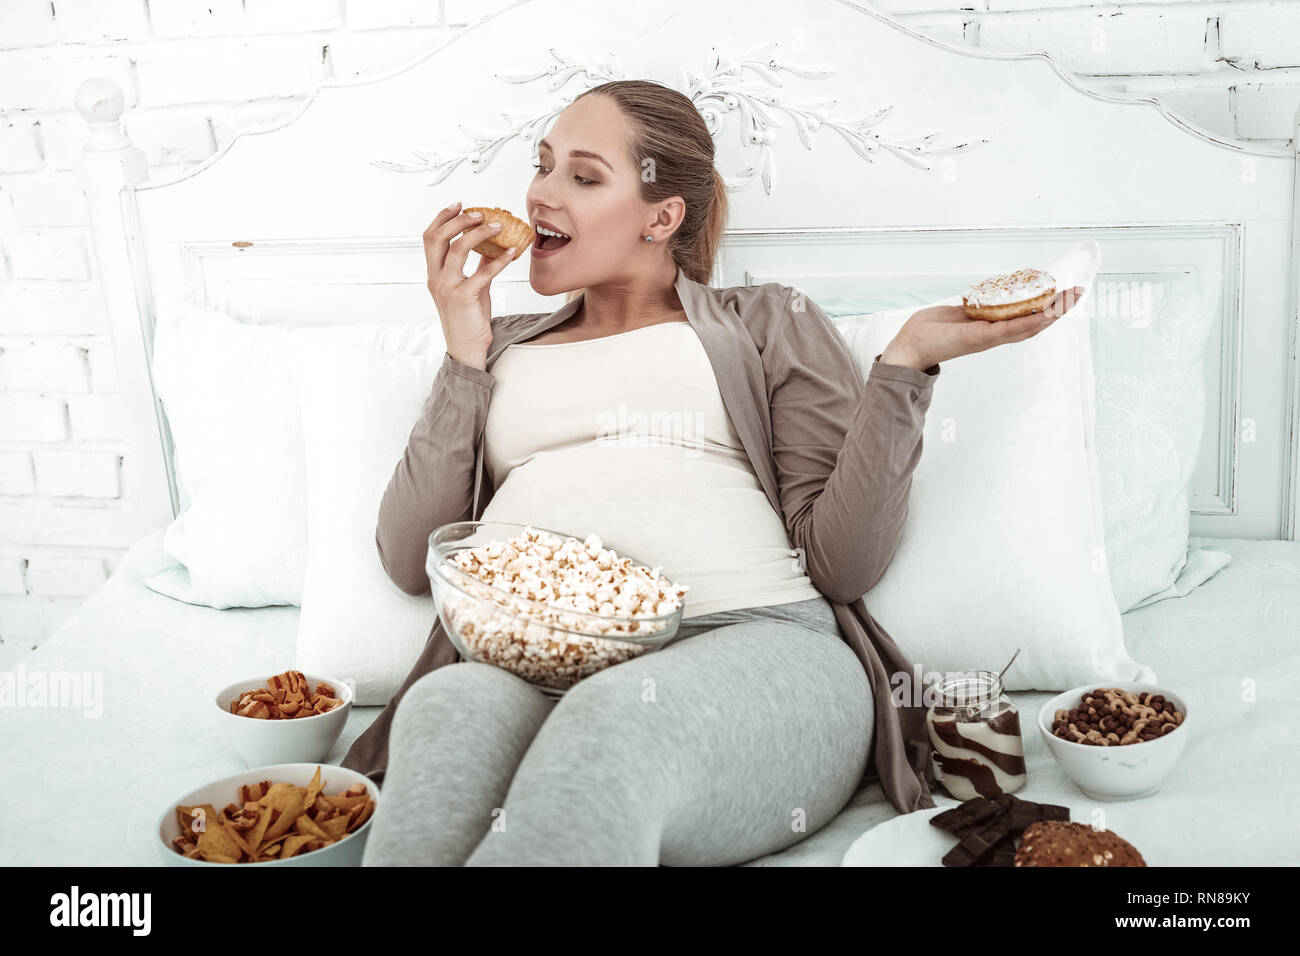 Cheerful thick woman lying in bed and filling herself with junk food - Stock Image